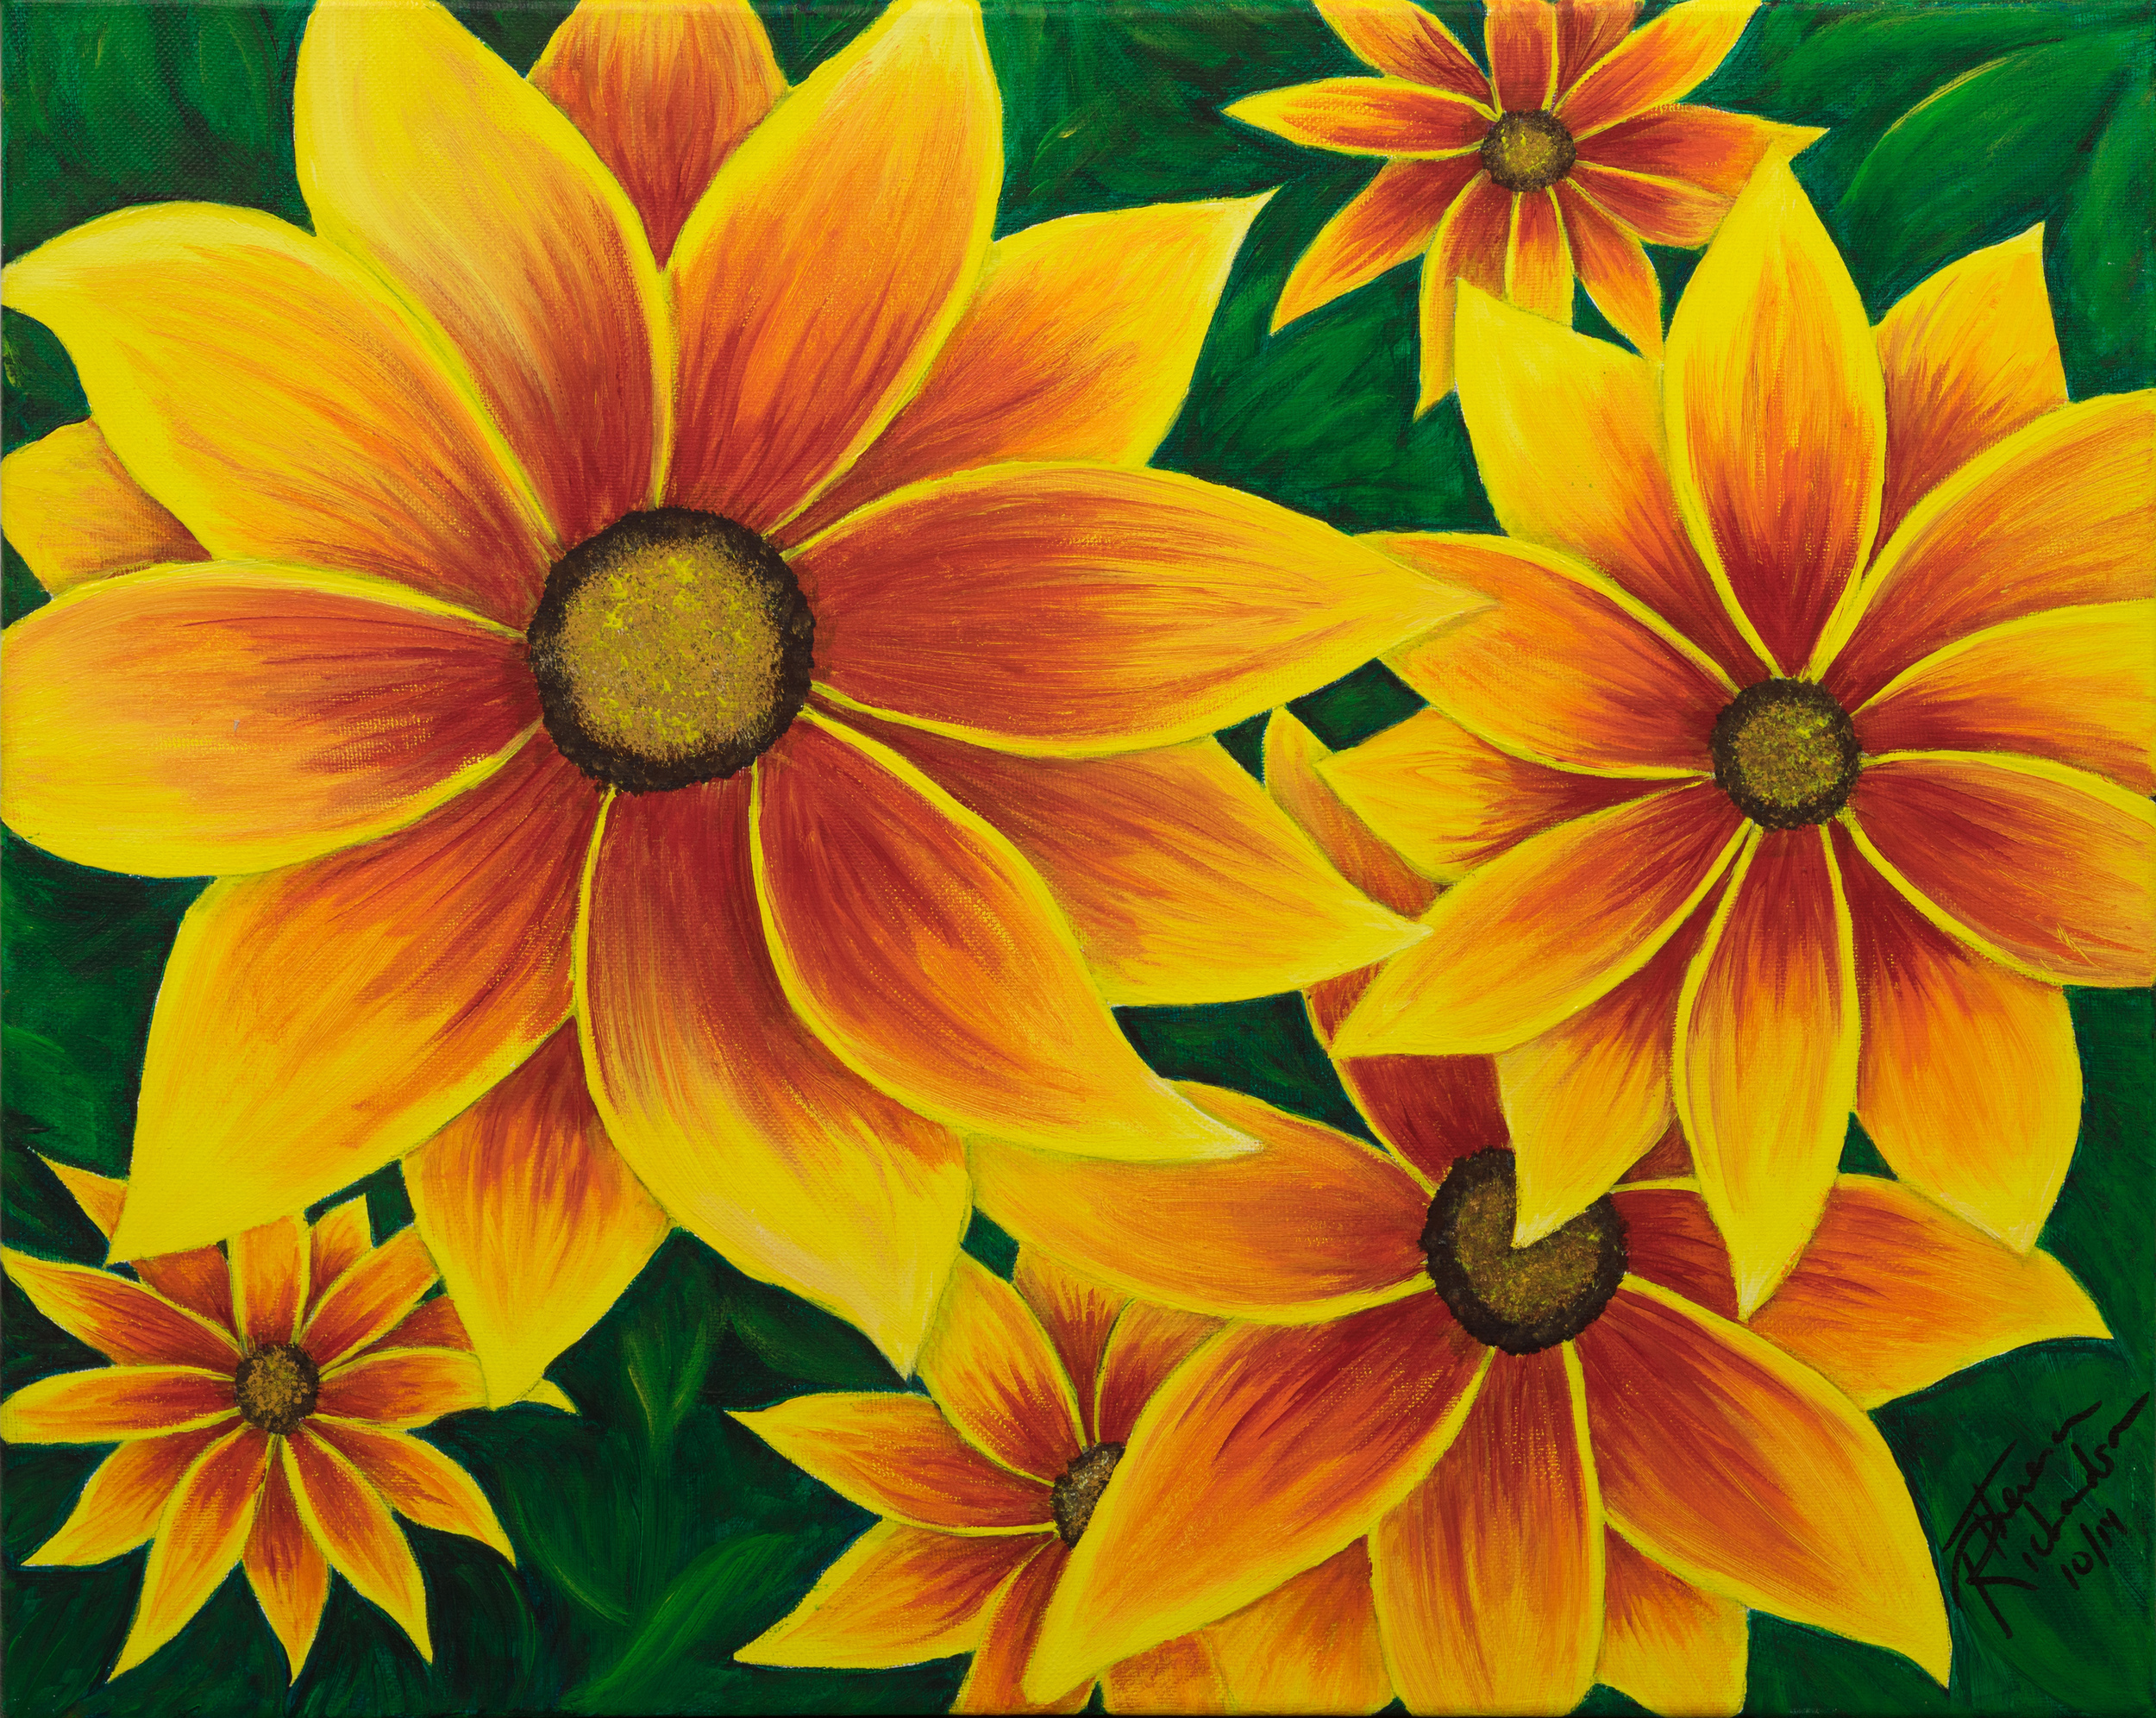 Sunflowers   , 2014, acrylic on canvas, 16 x 20 inches